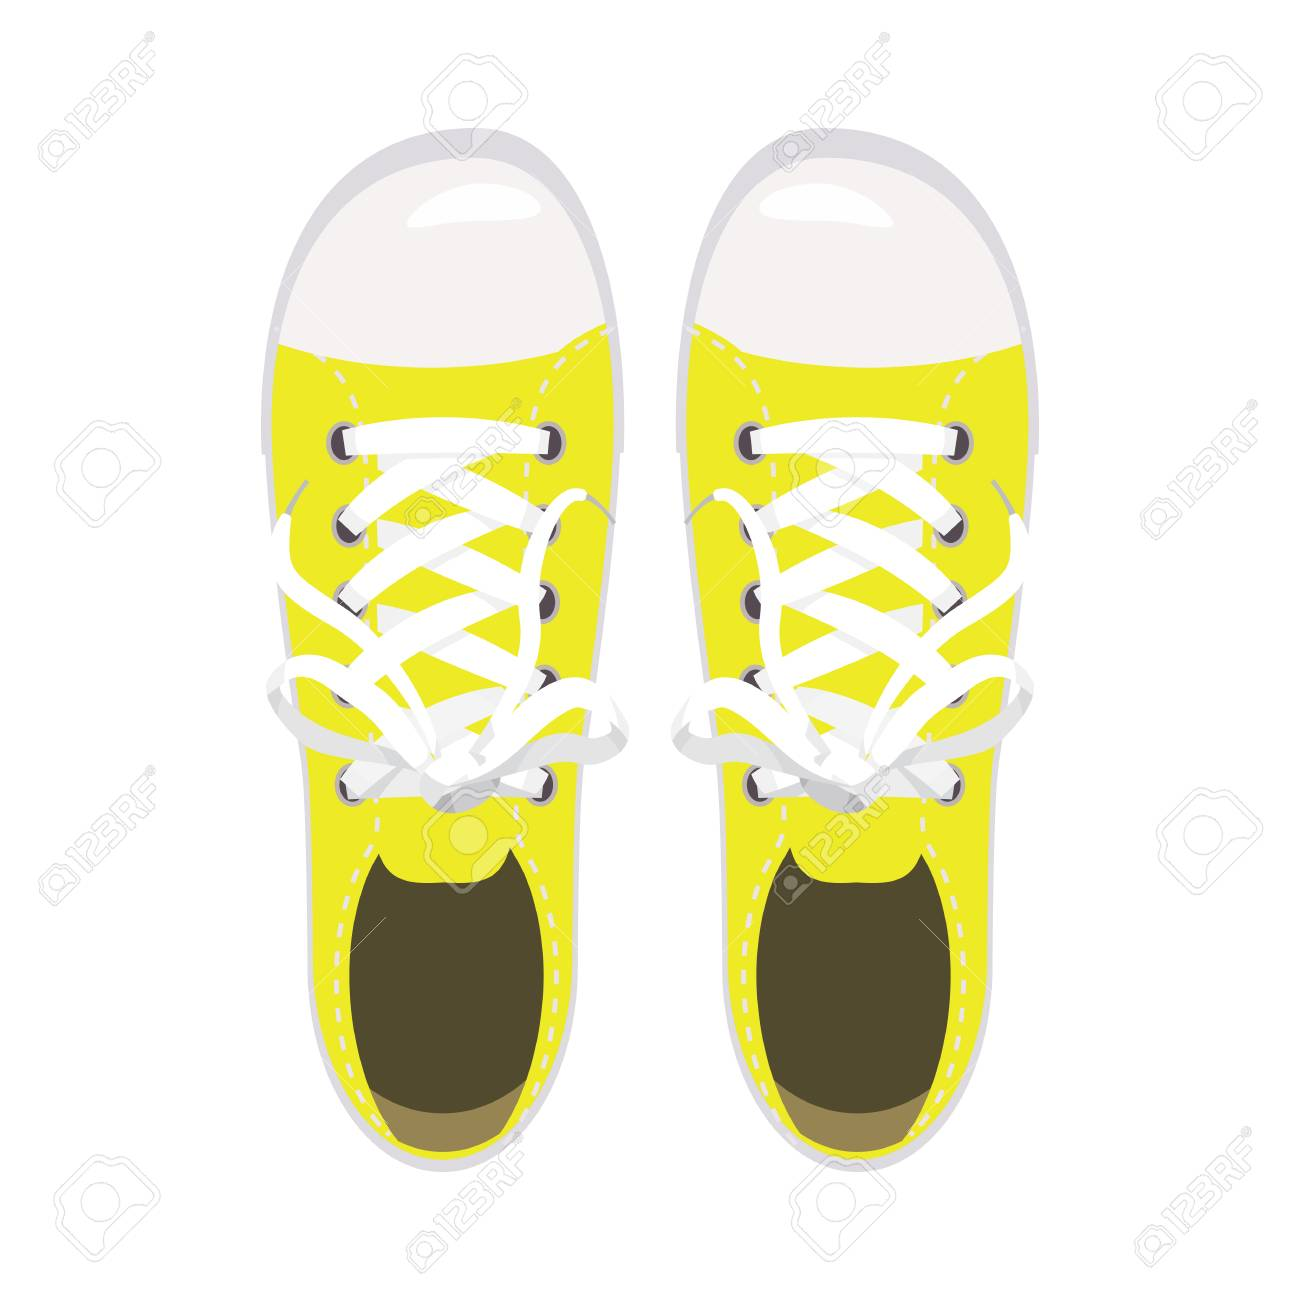 Sports Shoes, Gym Shoes, Keds Yellow